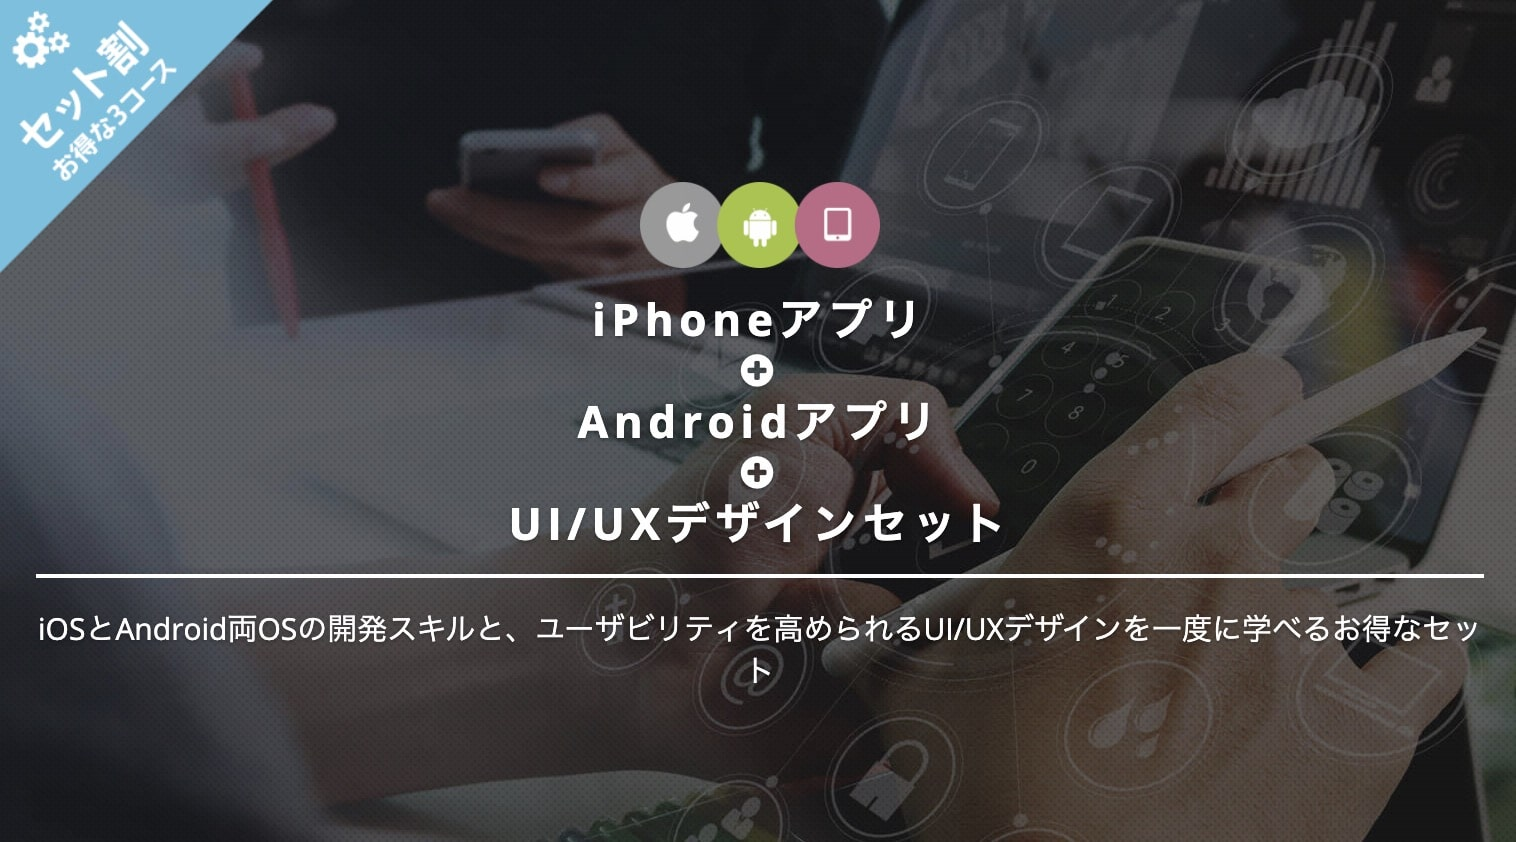 iPhoneアプリ+Androidアプリ+UI/UXデザインセットの料金|TechAcademy(テックアカデミー)3セット